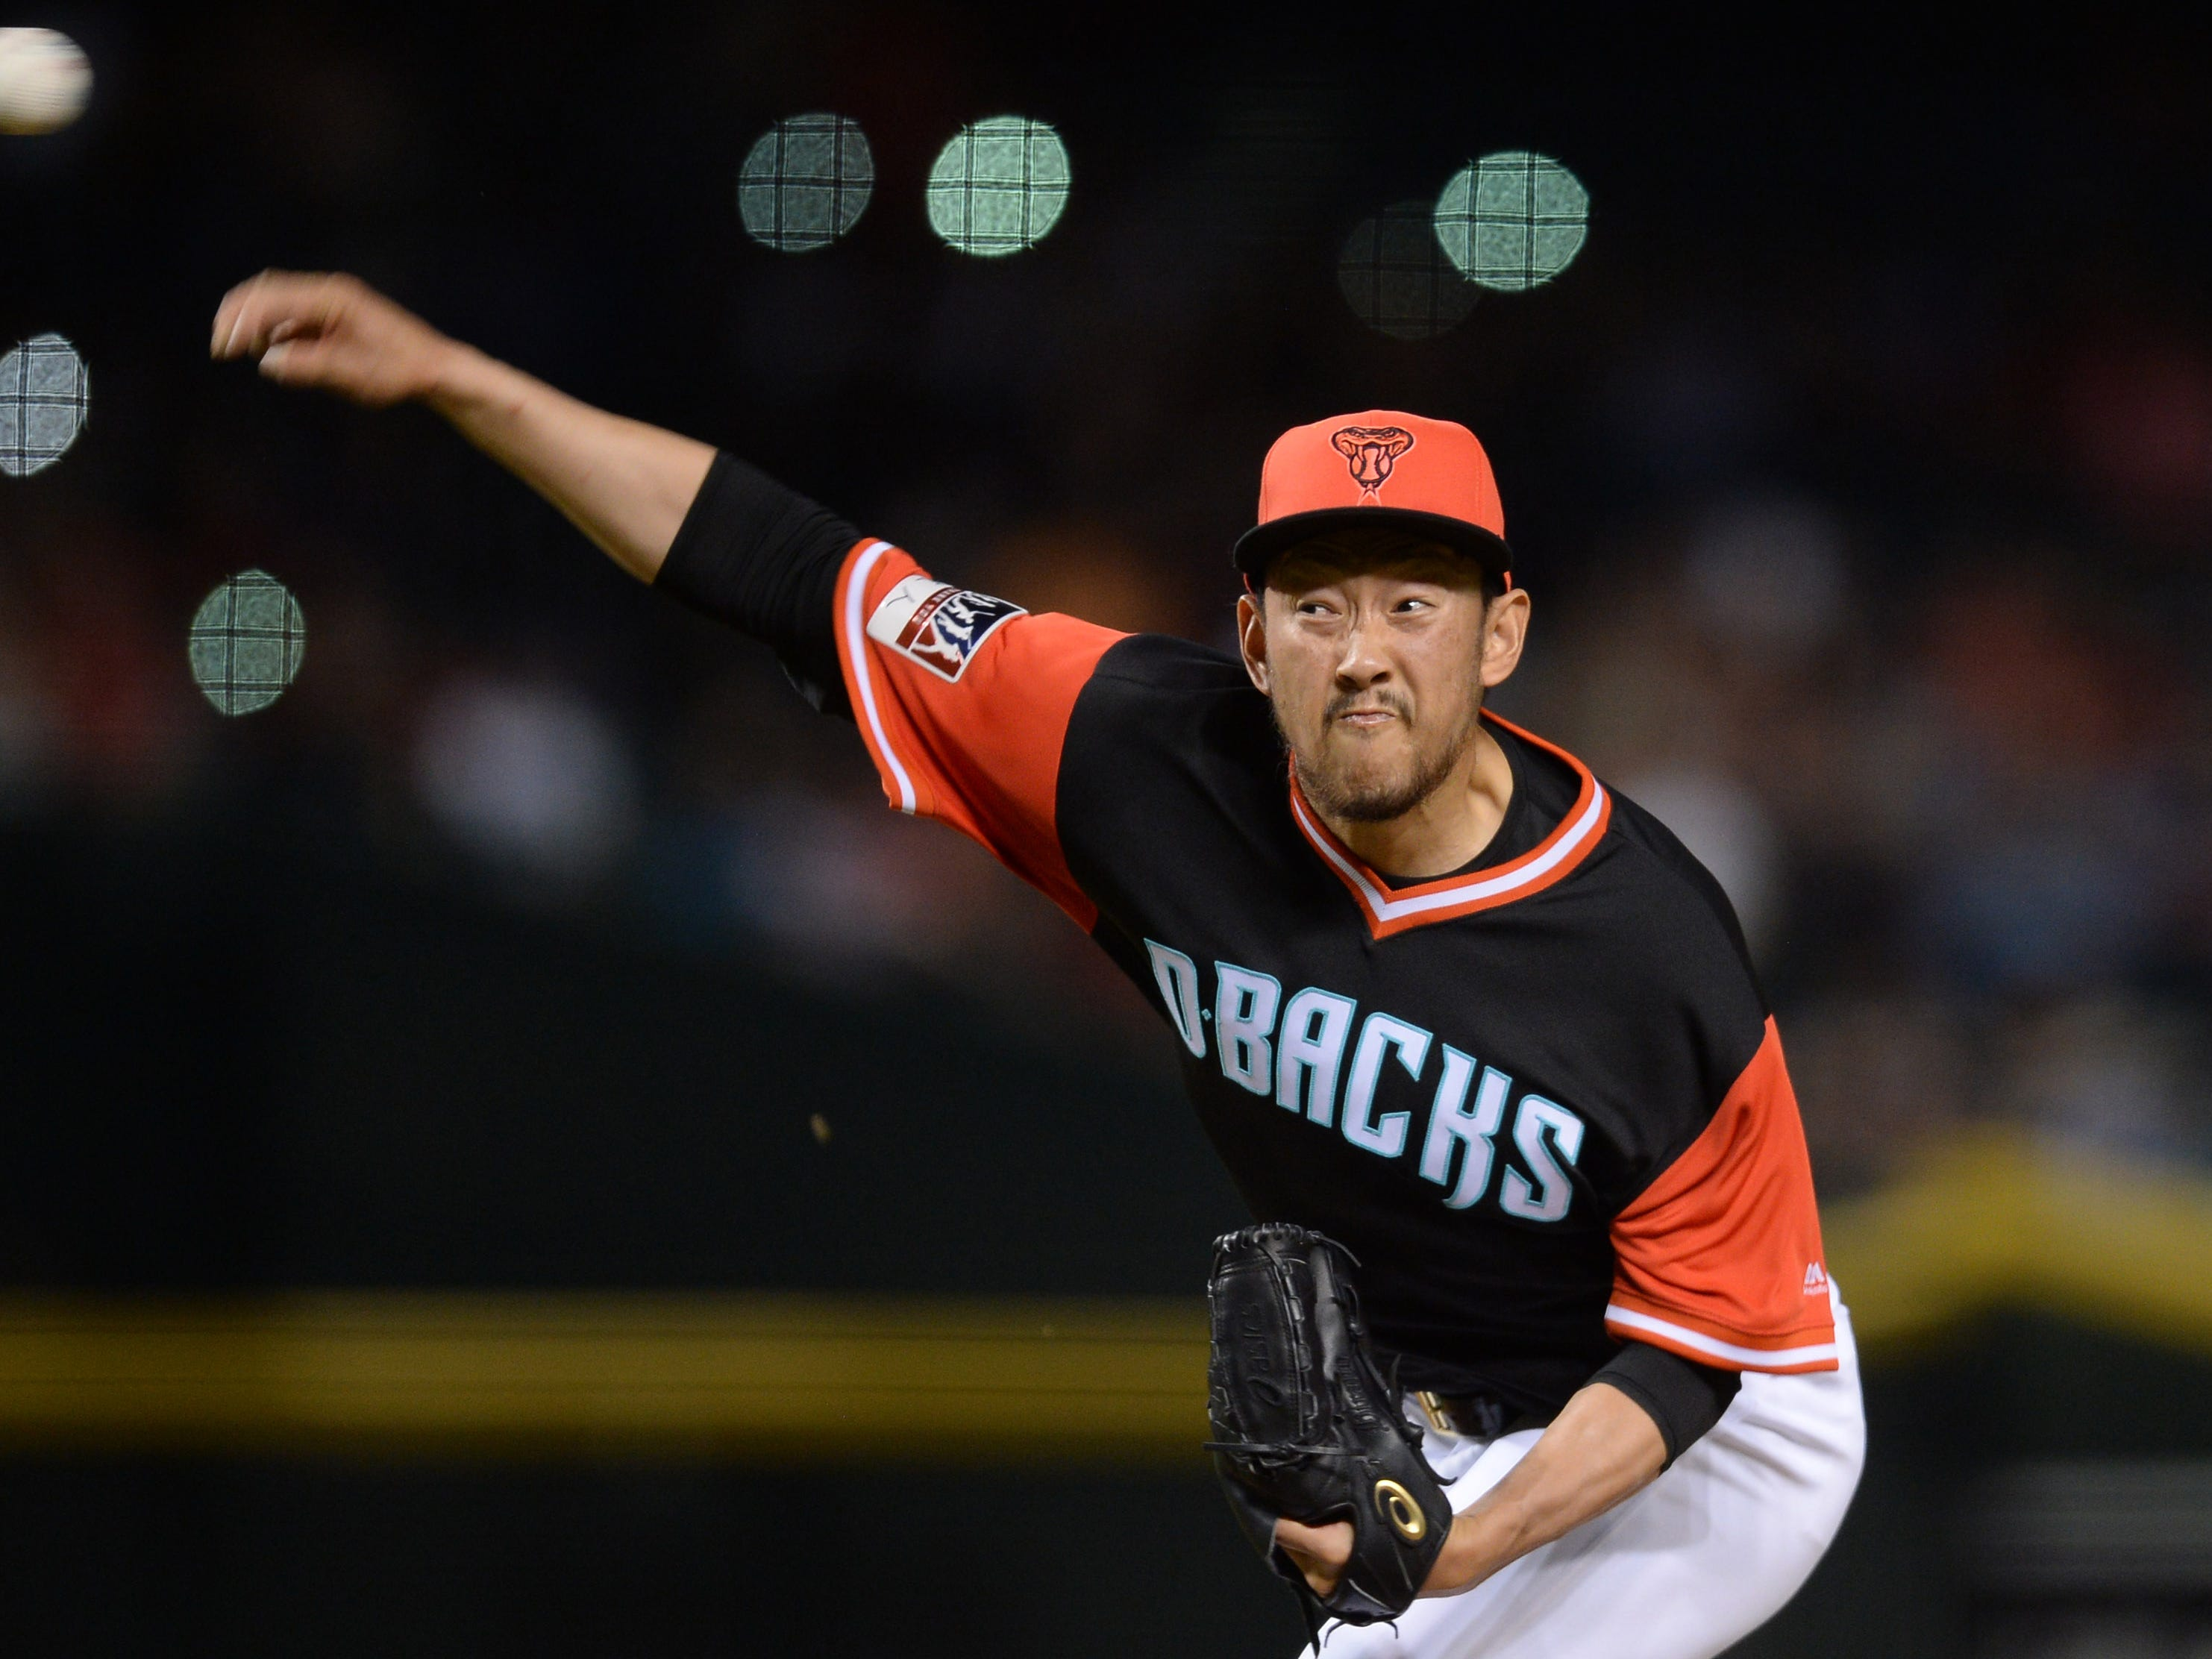 Aug 25, 2018; Phoenix, AZ, USA; Arizona Diamondbacks relief pitcher Yoshihisa Hirano (66) pitches against the Seattle Mariners during the eighth inning at Chase Field. Mandatory Credit: Joe Camporeale-USA TODAY Sports